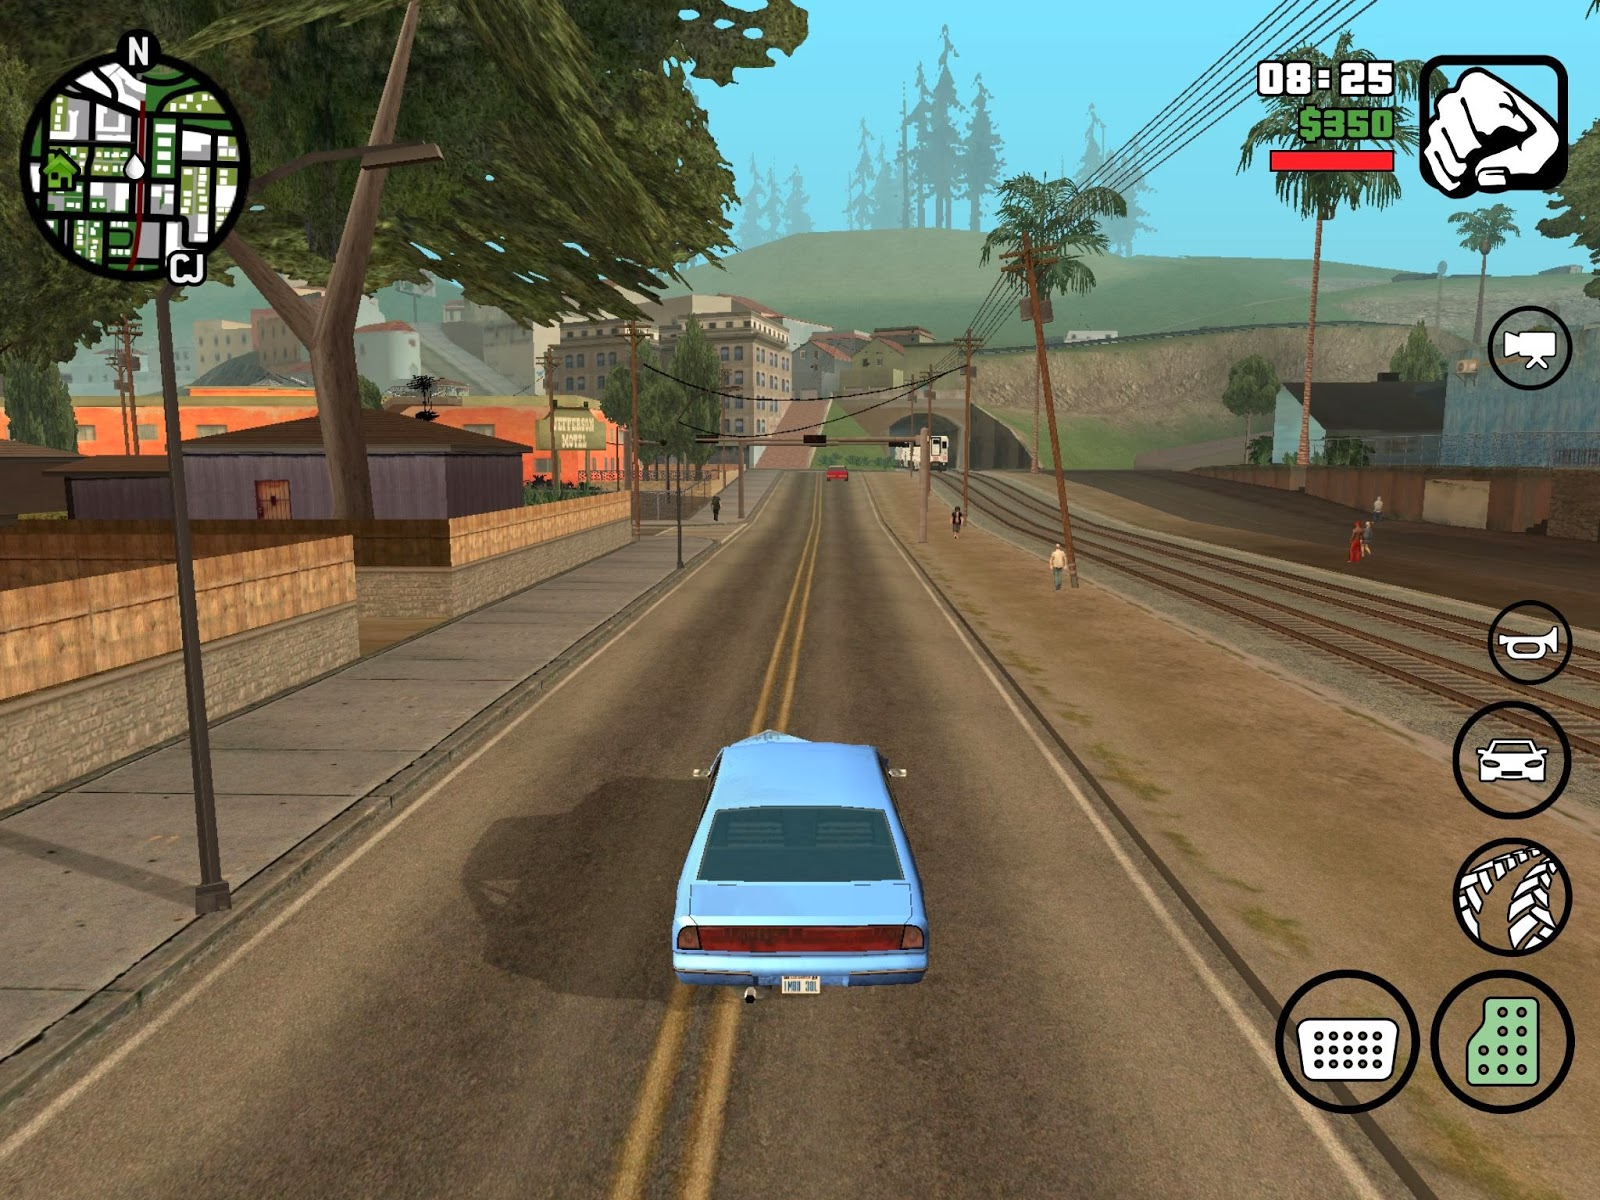 Gta San Andreas Android Cheat Mod Apk Free Download